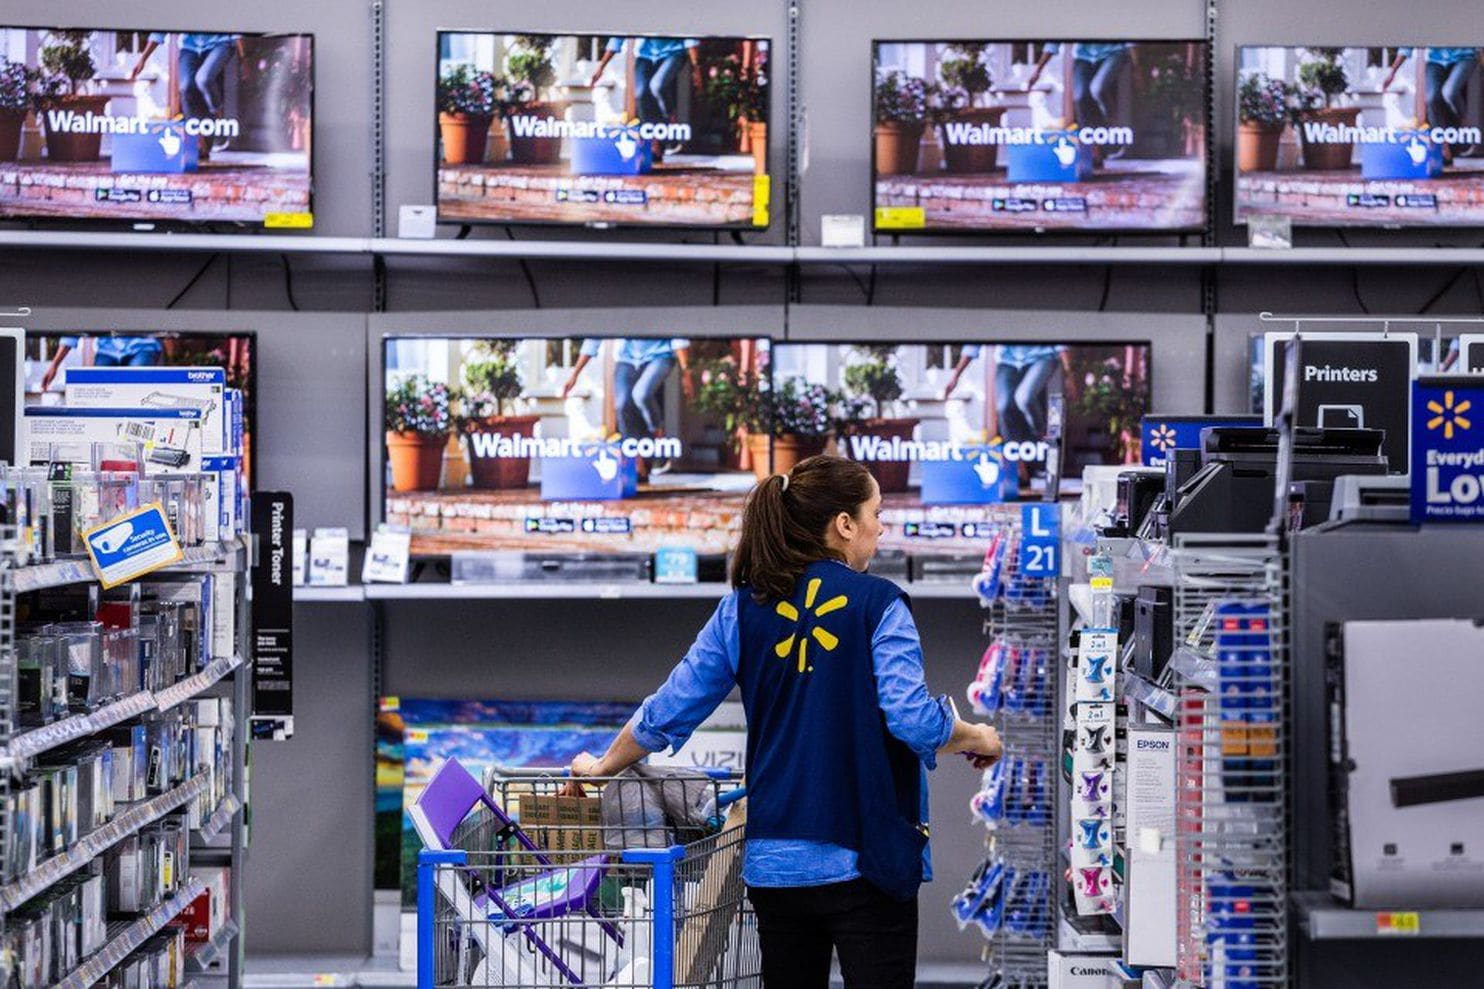 Artistic Walmart To Offer Employees A College Education A Day Cheap Printers At Walmart Color Printers At Walmart A Day Washington Post Walmart To Offer Employees A College Education dpreview Printers At Walmart